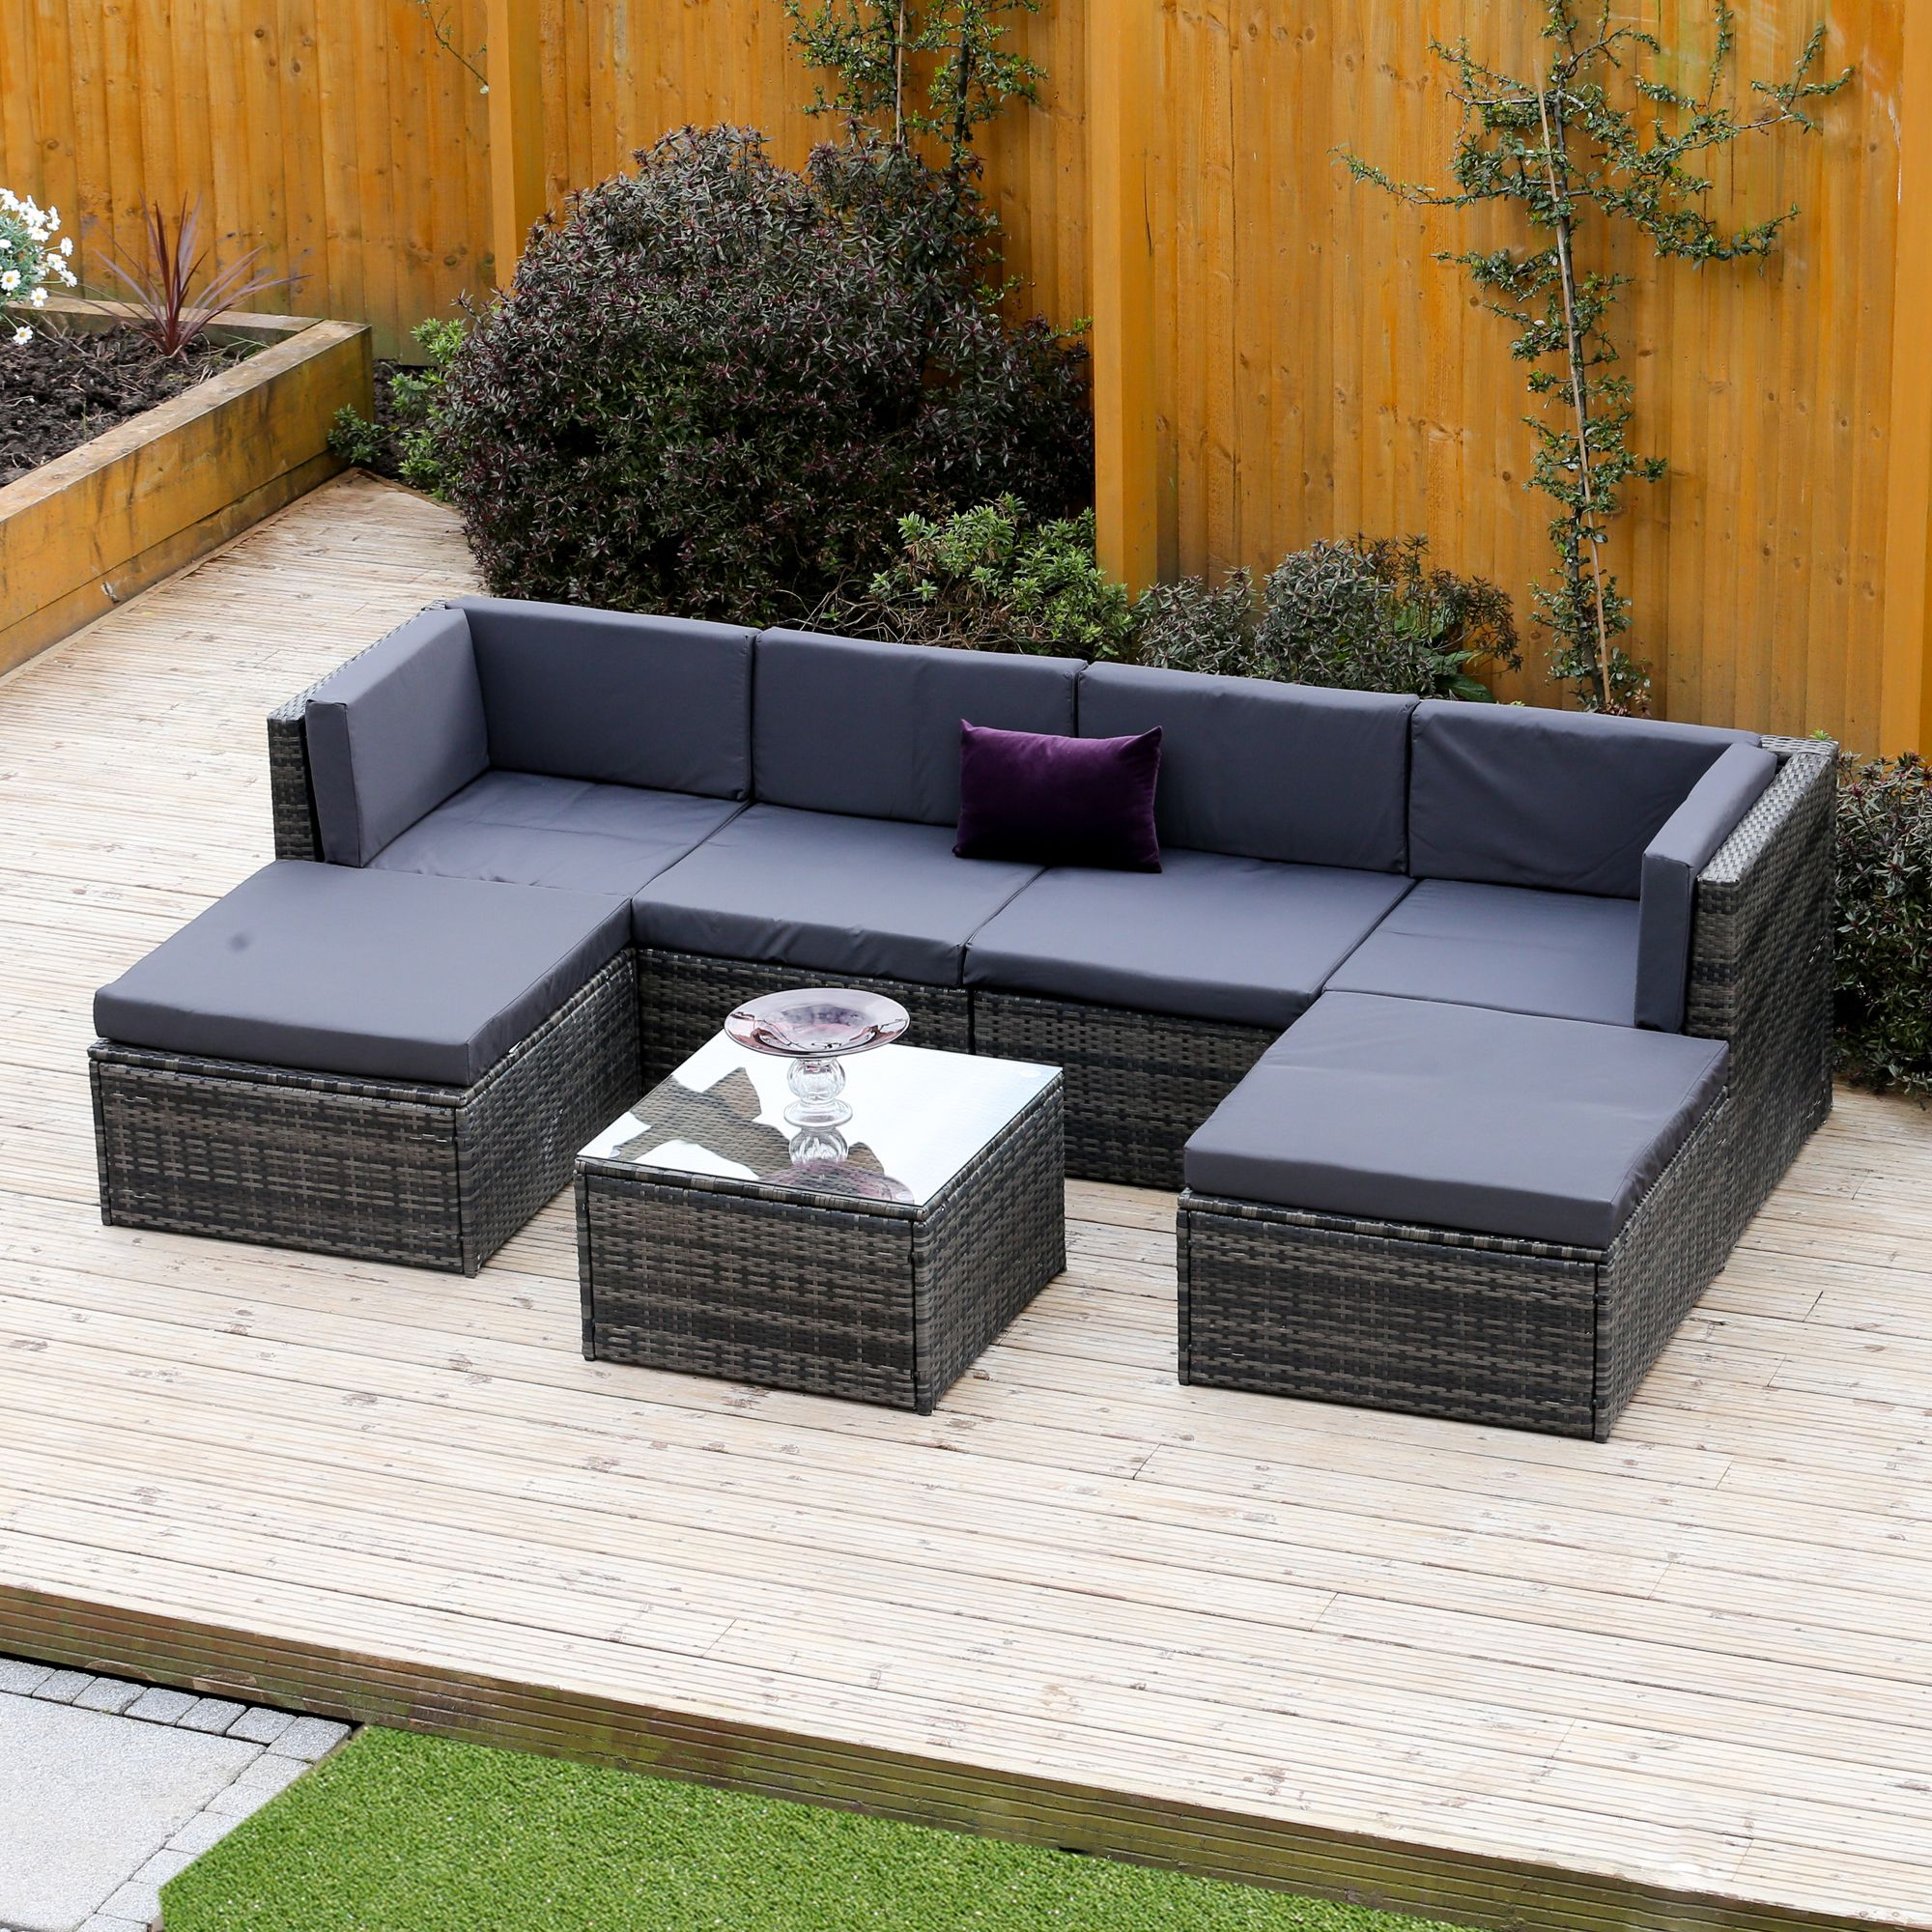 rattan garden furniture stock a great range of outdoor table sets corner sofas and cube sets - Garden Furniture Corner Sofa